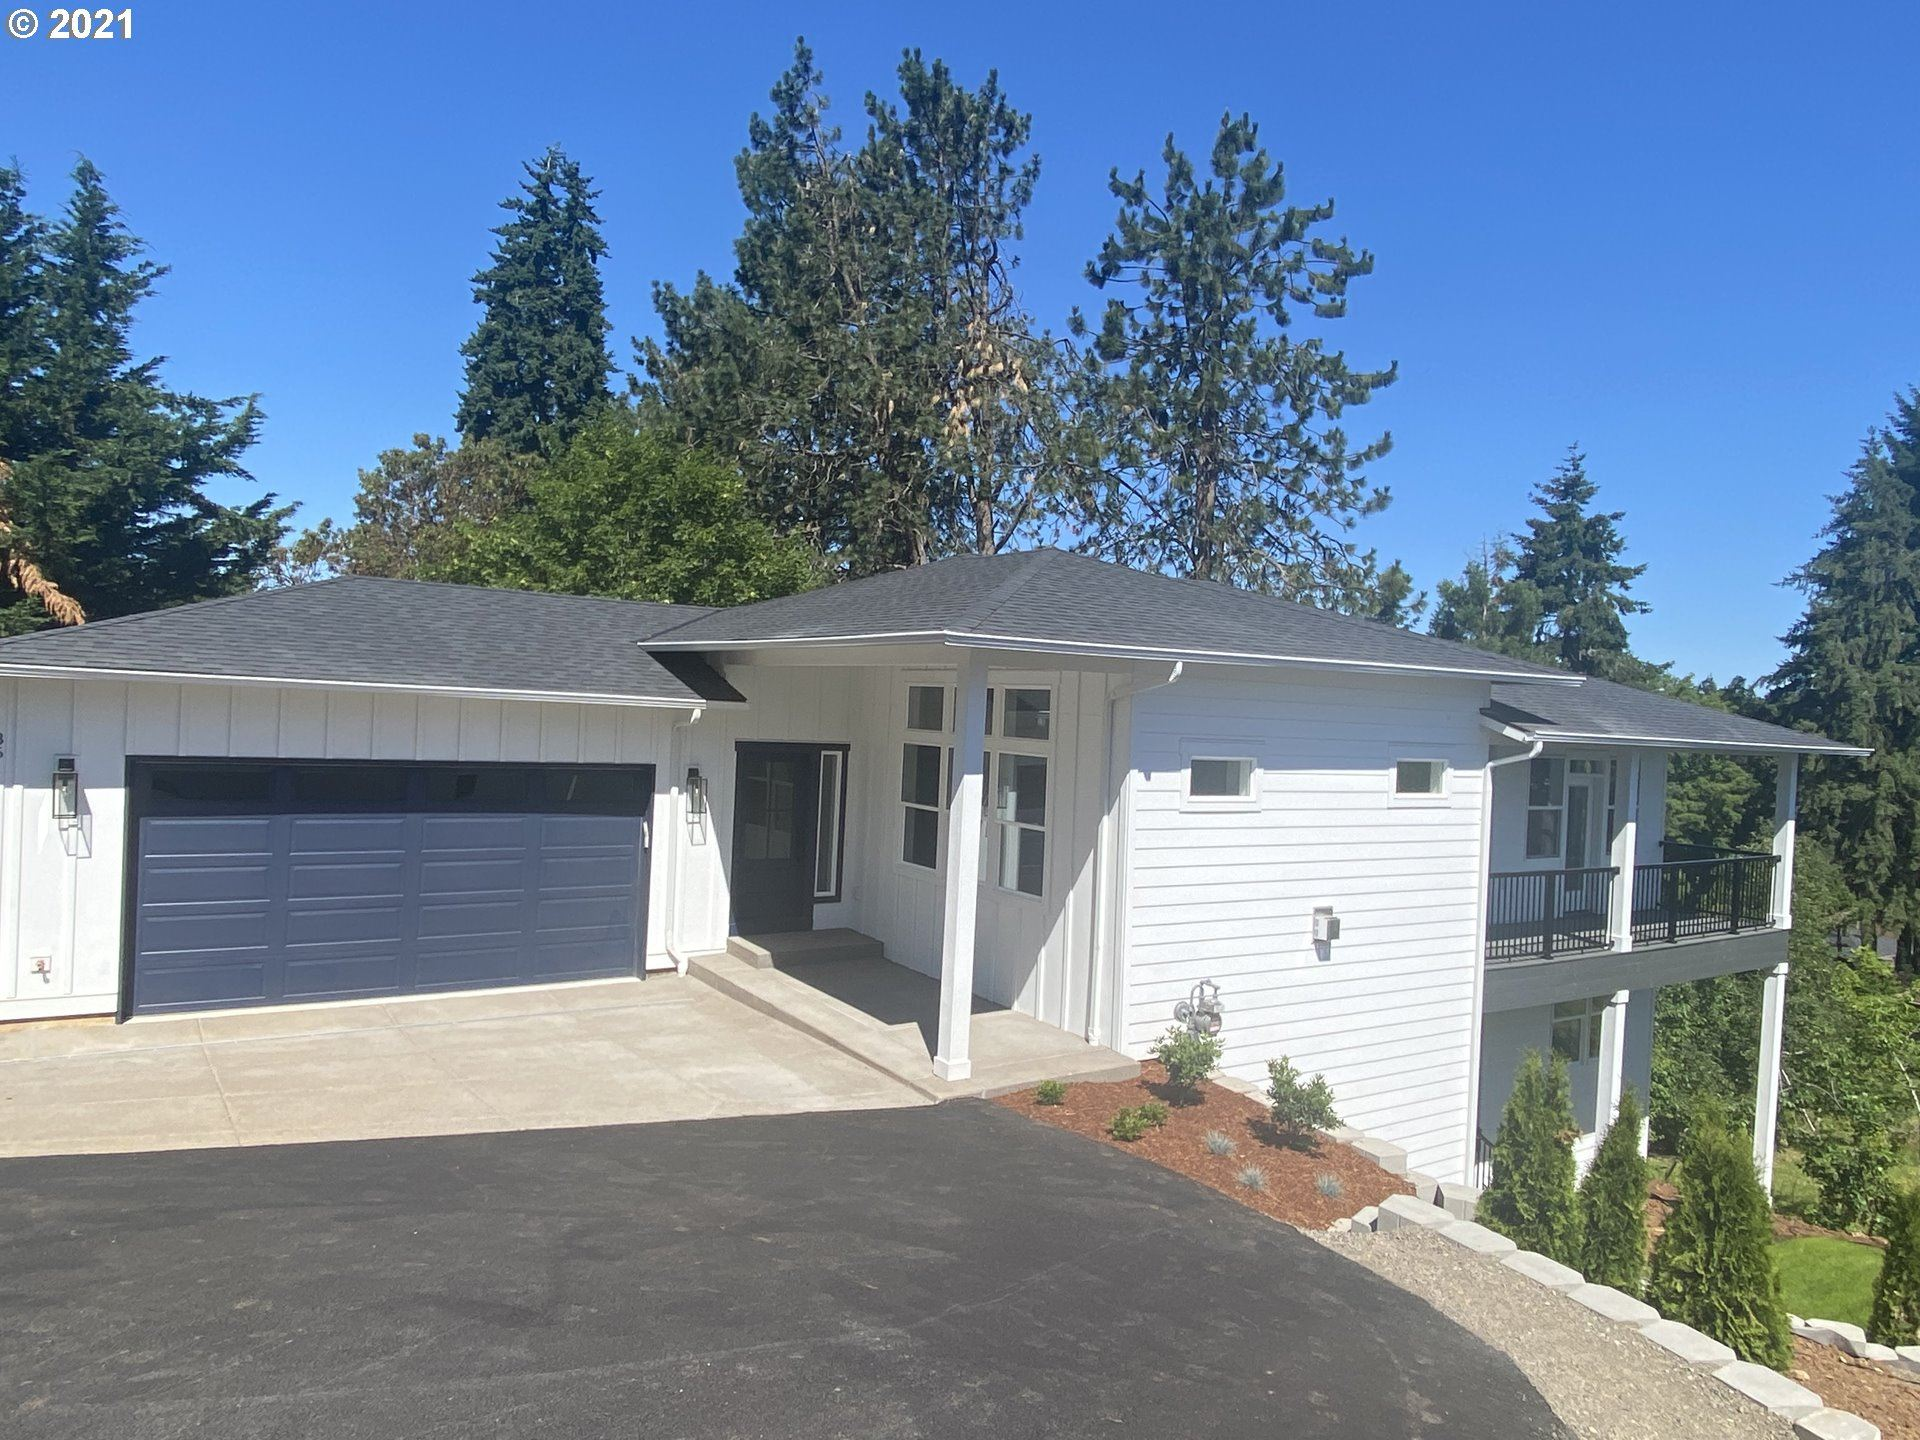 3511 SCENIC VIEW DR, Salem, OR 97302 - MLS#: 21100725